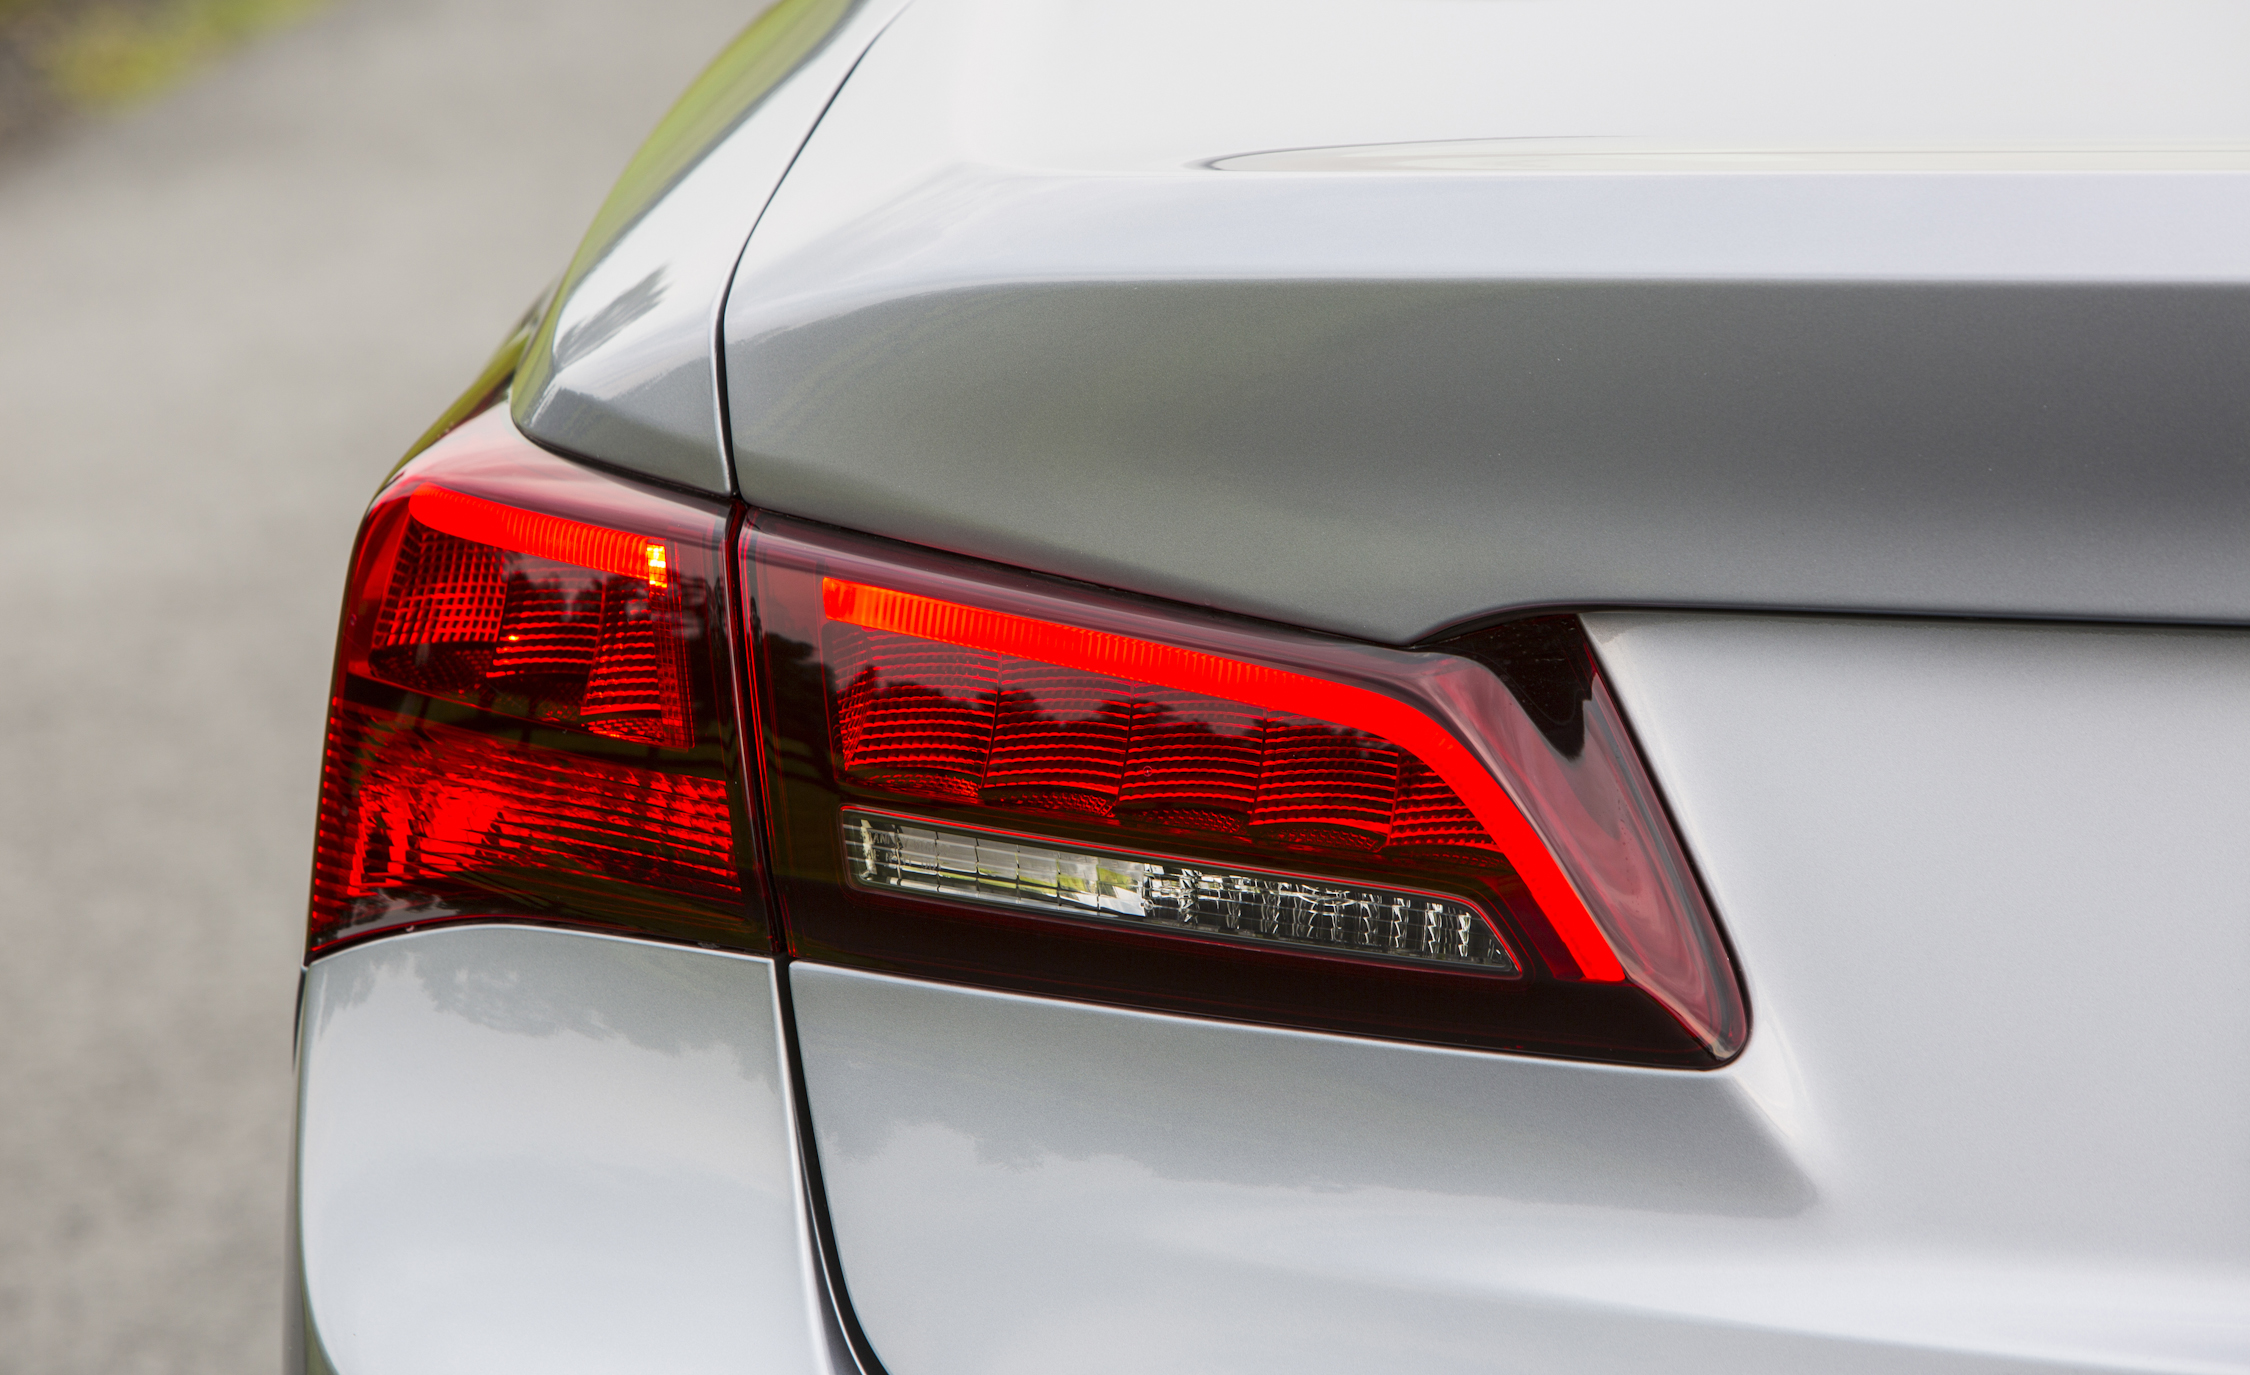 2015 Acura TLX 3.5L SH-AWD Exterior Left Taillight